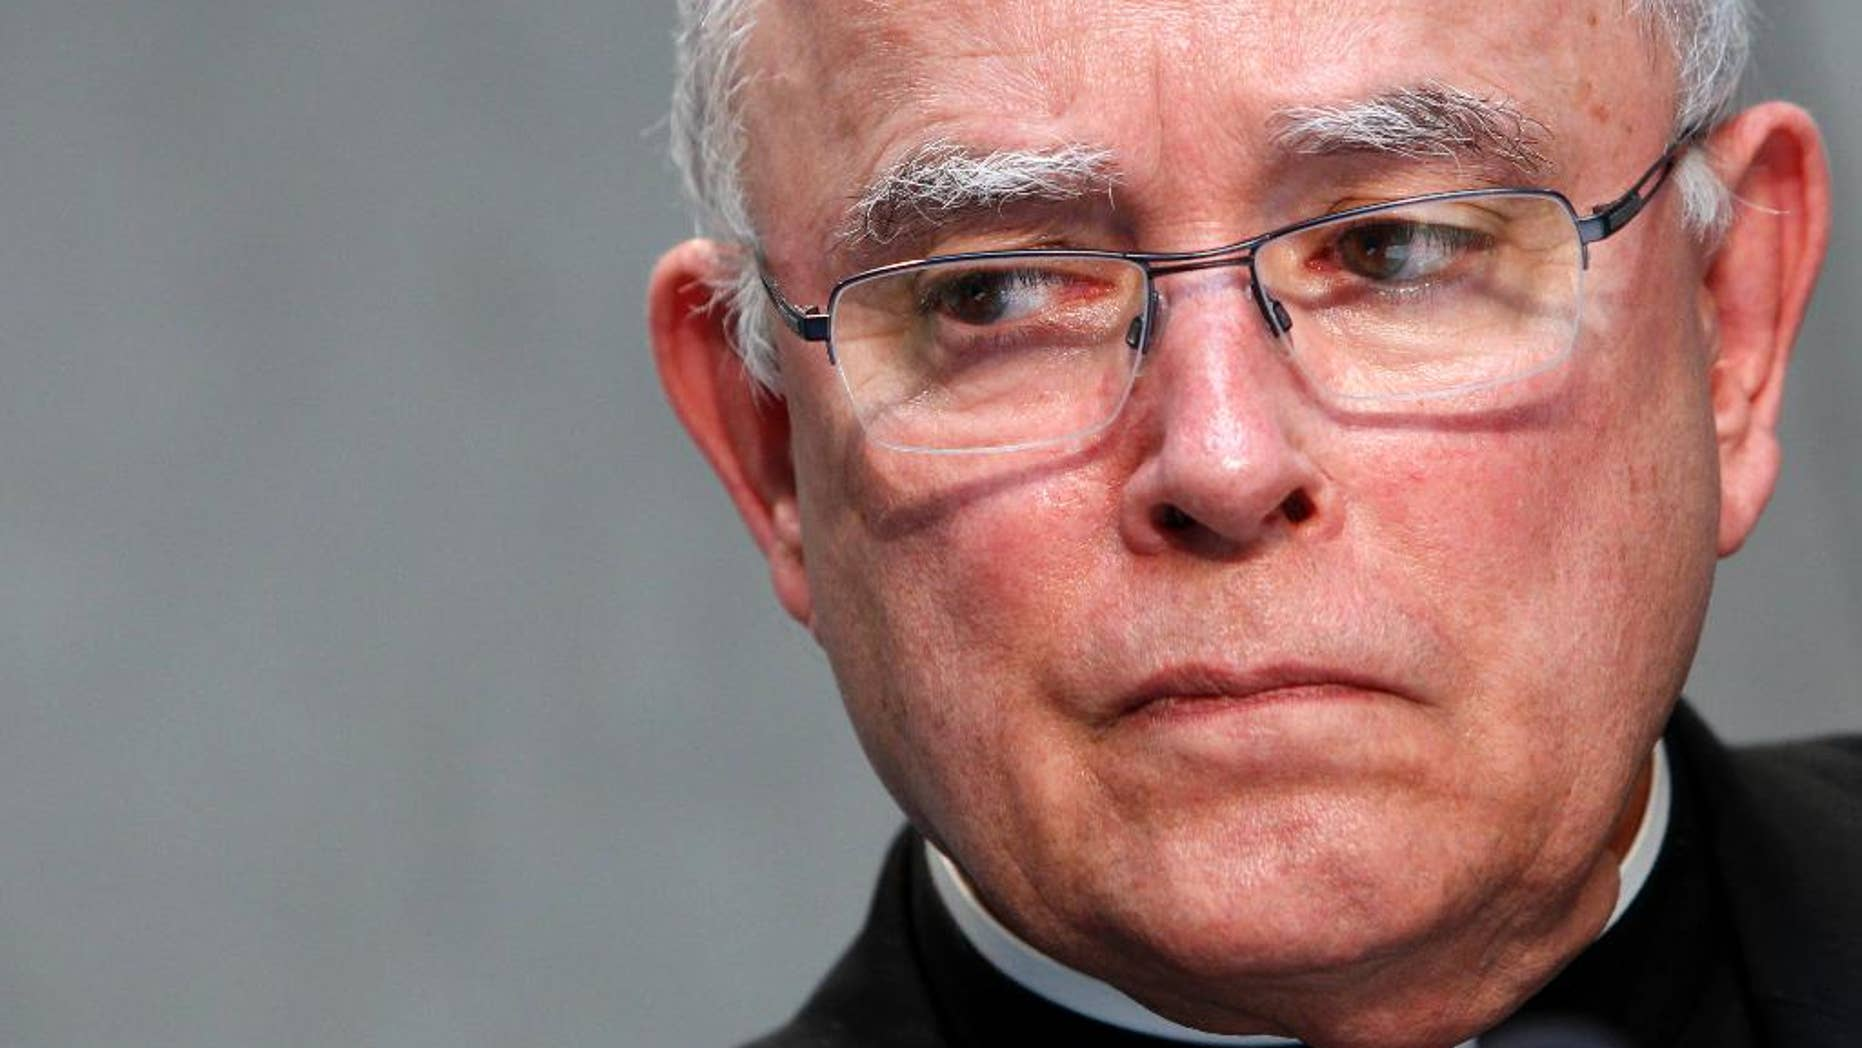 """FILE - In this June 25, 2015, file photo, Philadelphia's Archbishop Charles Joseph Chaput attends a news conference at the Vatican. The leader of the Roman Catholic Archdiocese of Philadelphia said divorced and remarried parishioners should abstain from sex and live """"like brother and sister"""" if they want to receive Holy Communion and haven't had their previous marriage annulled. Chaput issued a new set of pastoral guidelines for clergy and other leaders in the archdiocese that went into effect July 1, 2016. (AP Photo/Riccardo De Luca, File)"""